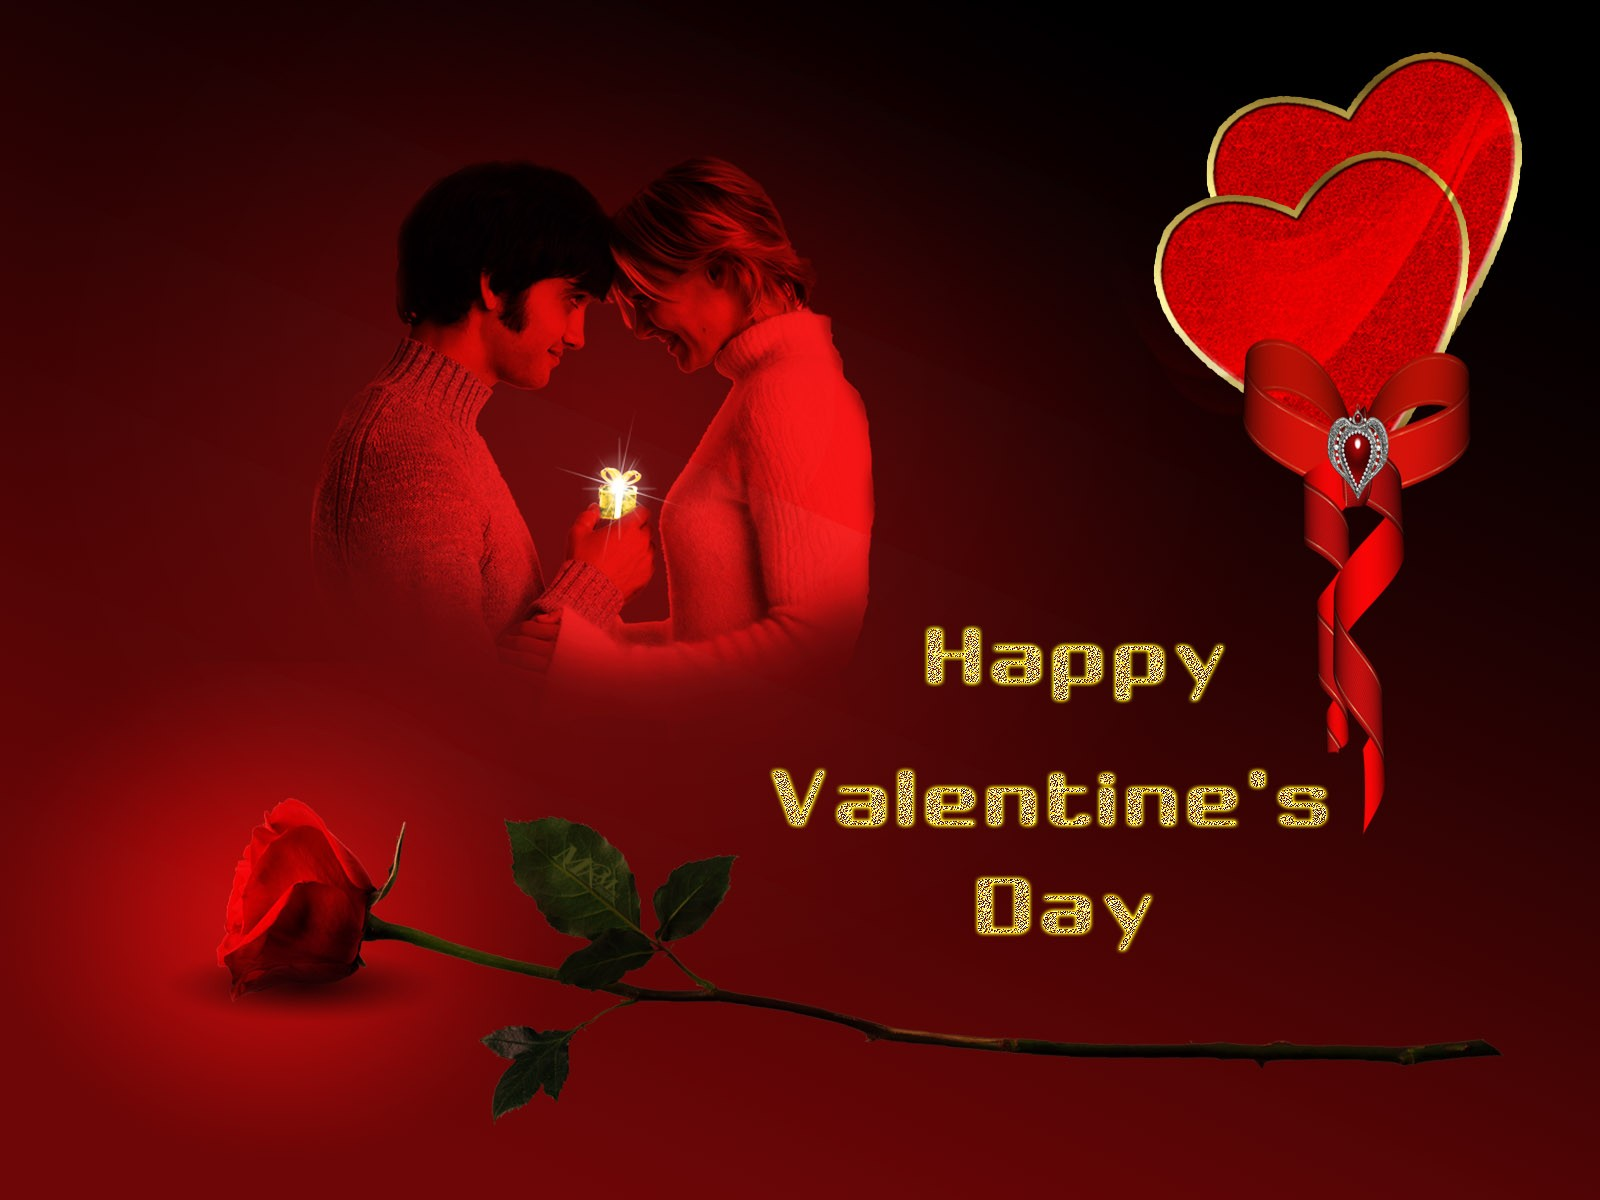 Valentine's Day Wallpaper & Pictures